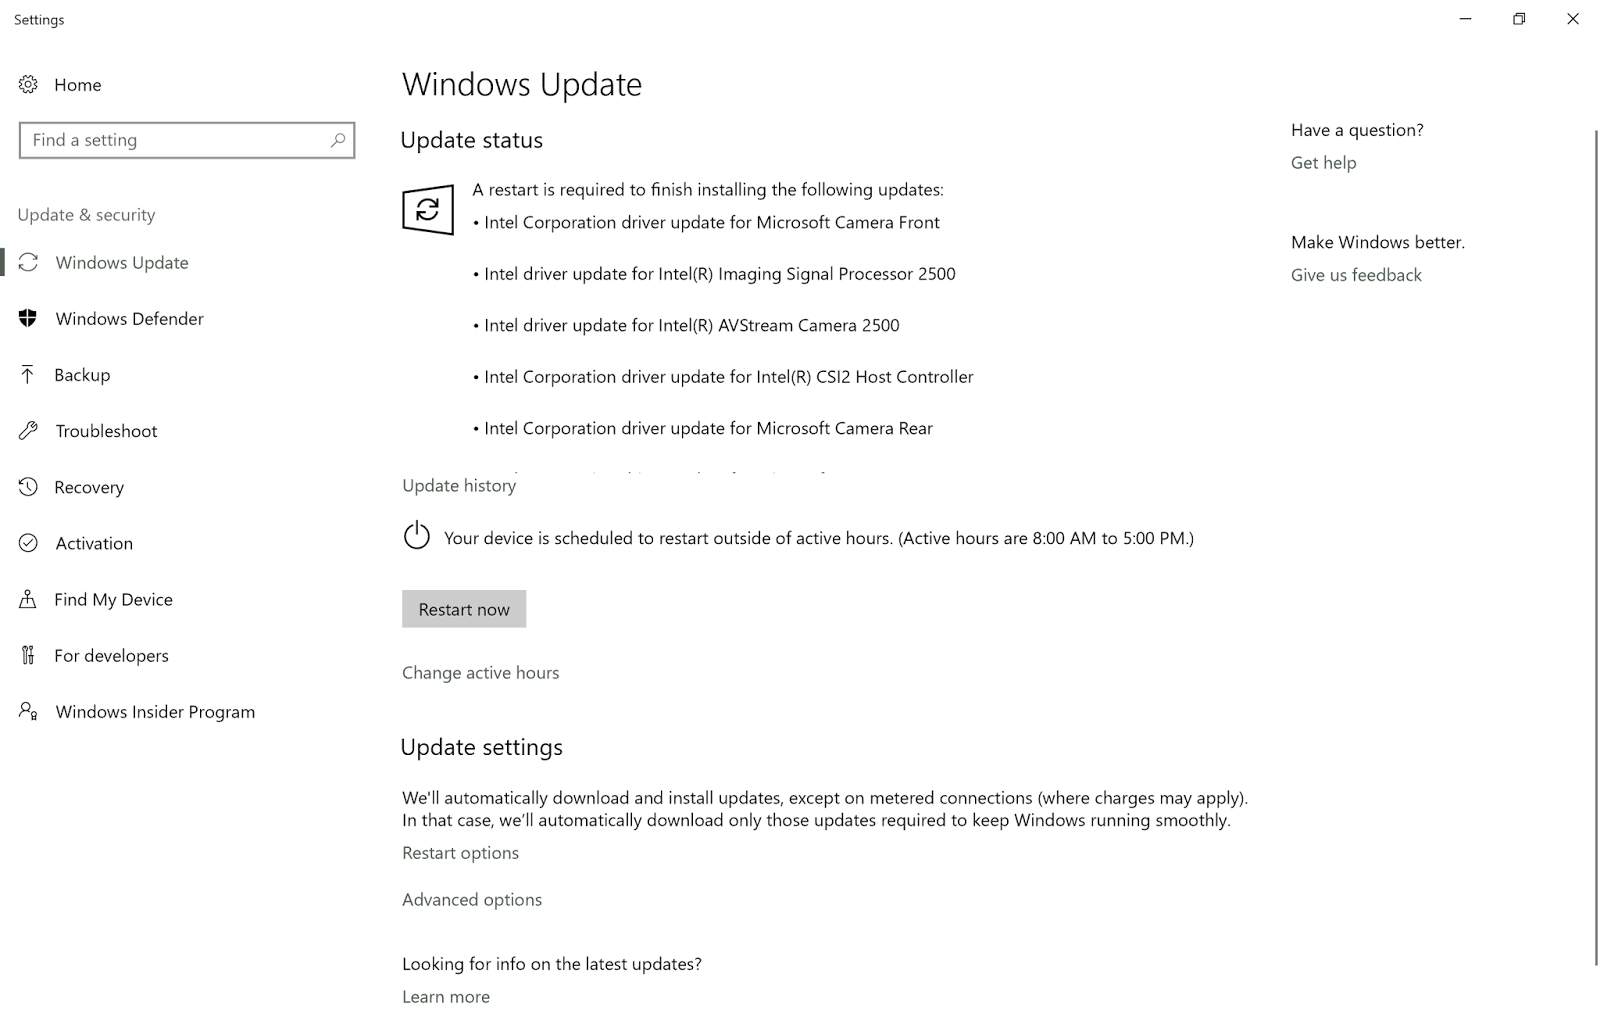 Surface Pro 4 Lingering Sleep Issues and October Post-update